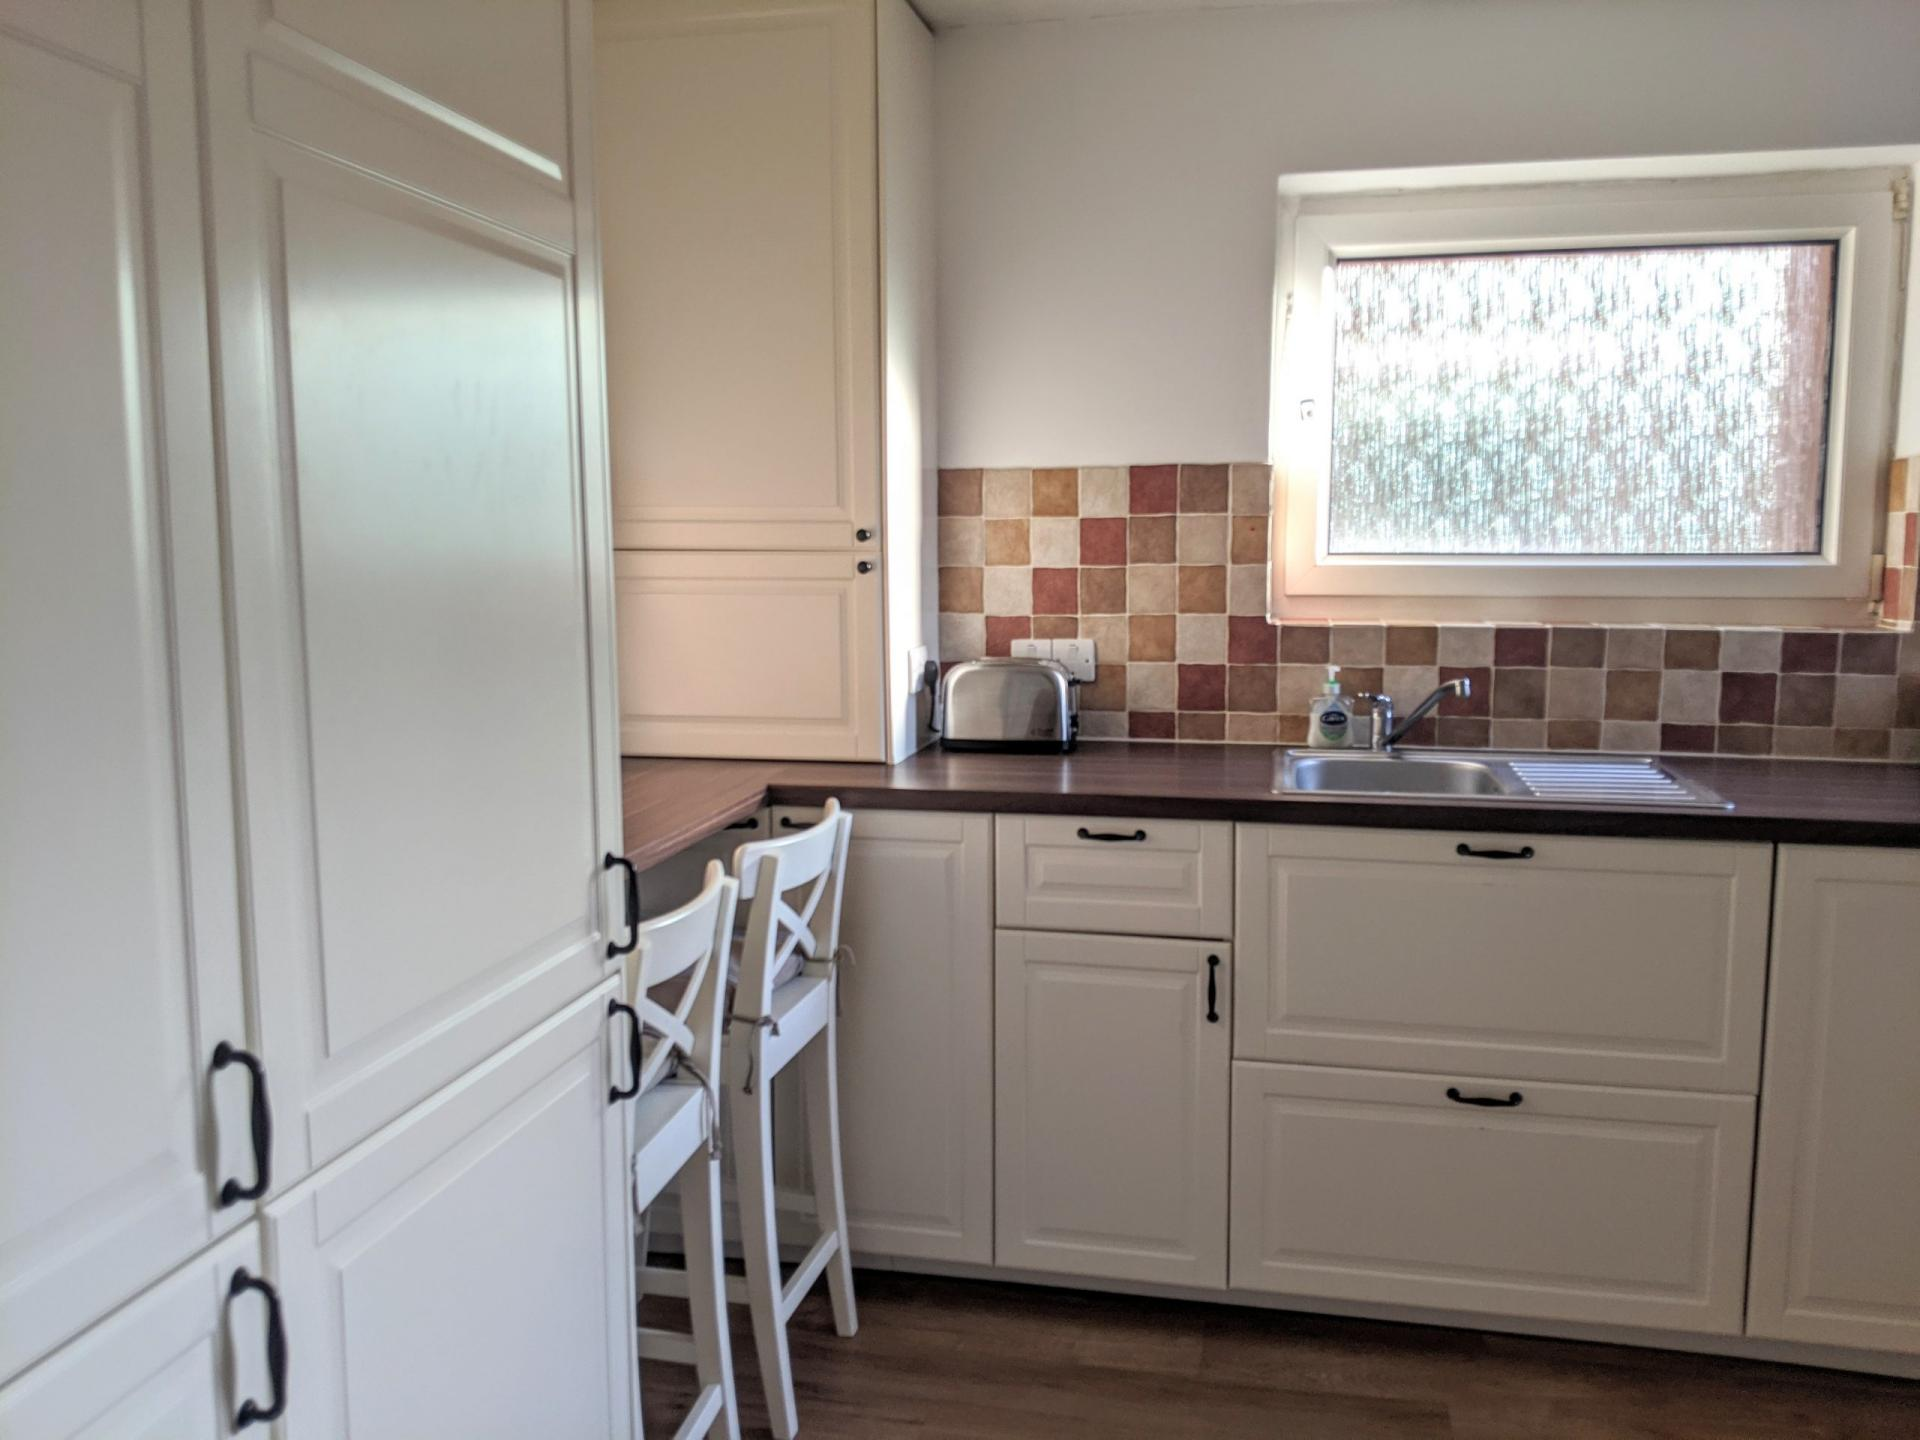 Kitchen at Benjamin House Apartment, Centre, High Wycombe